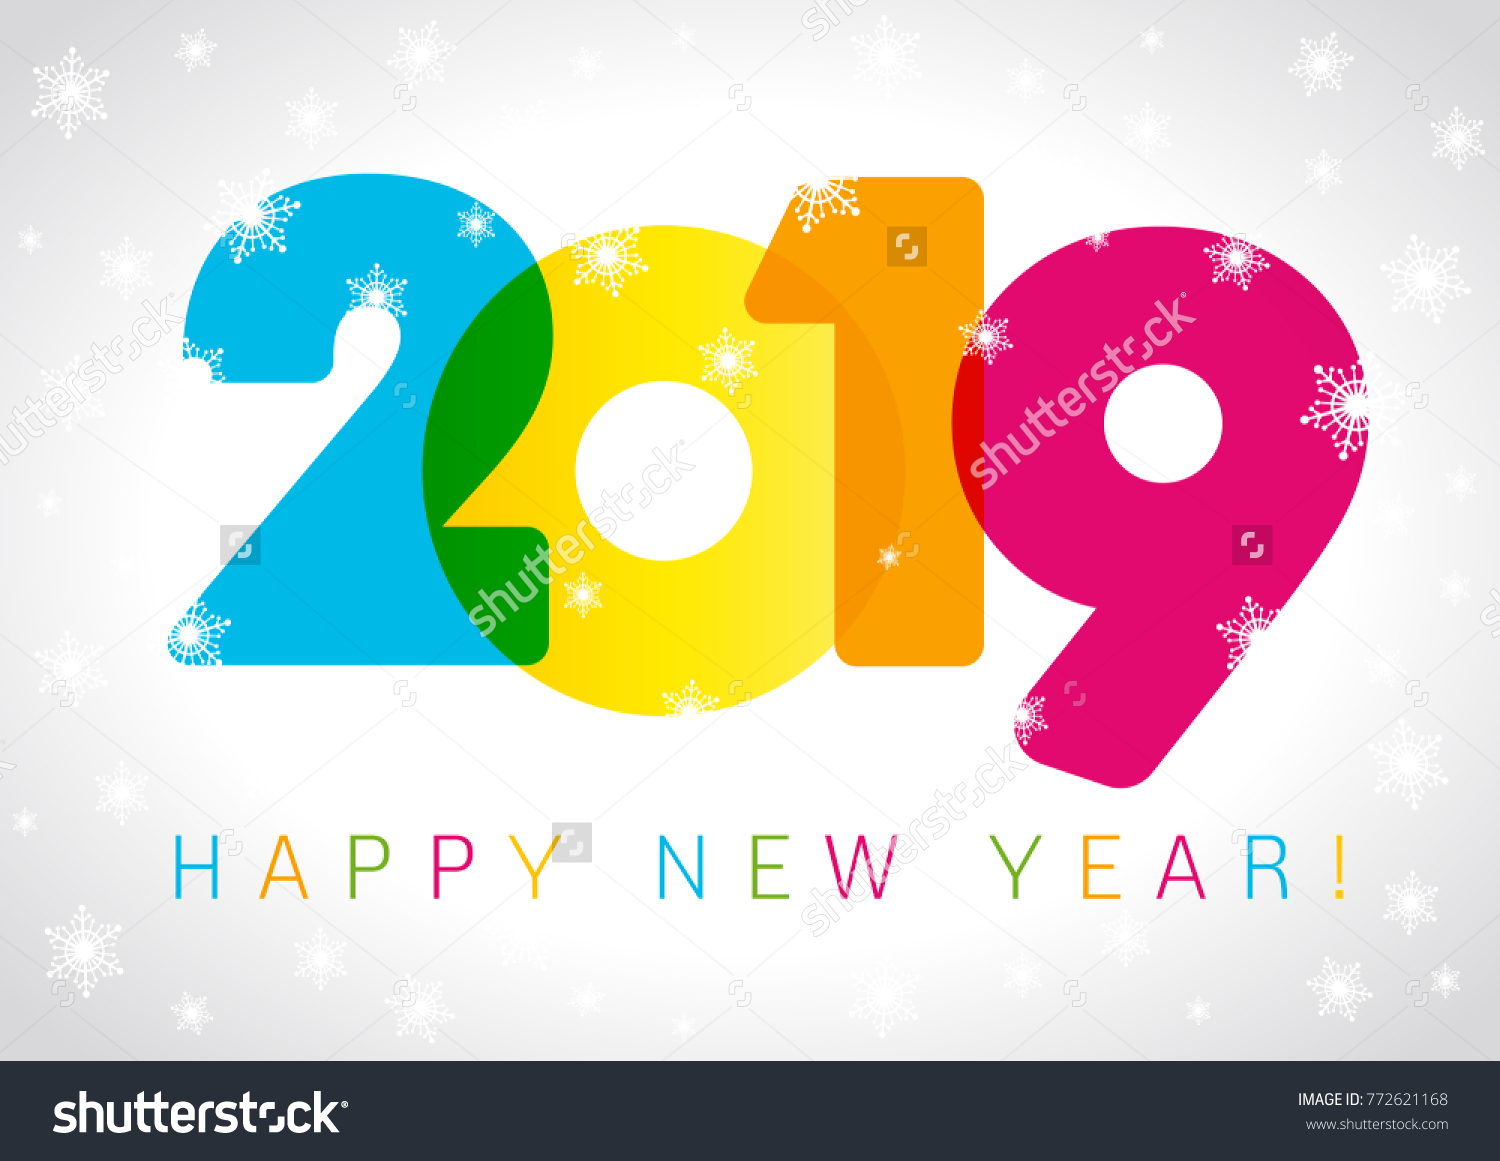 2019 Happy New Year card design. Vector happy new year greeting  illustration with colored 2019